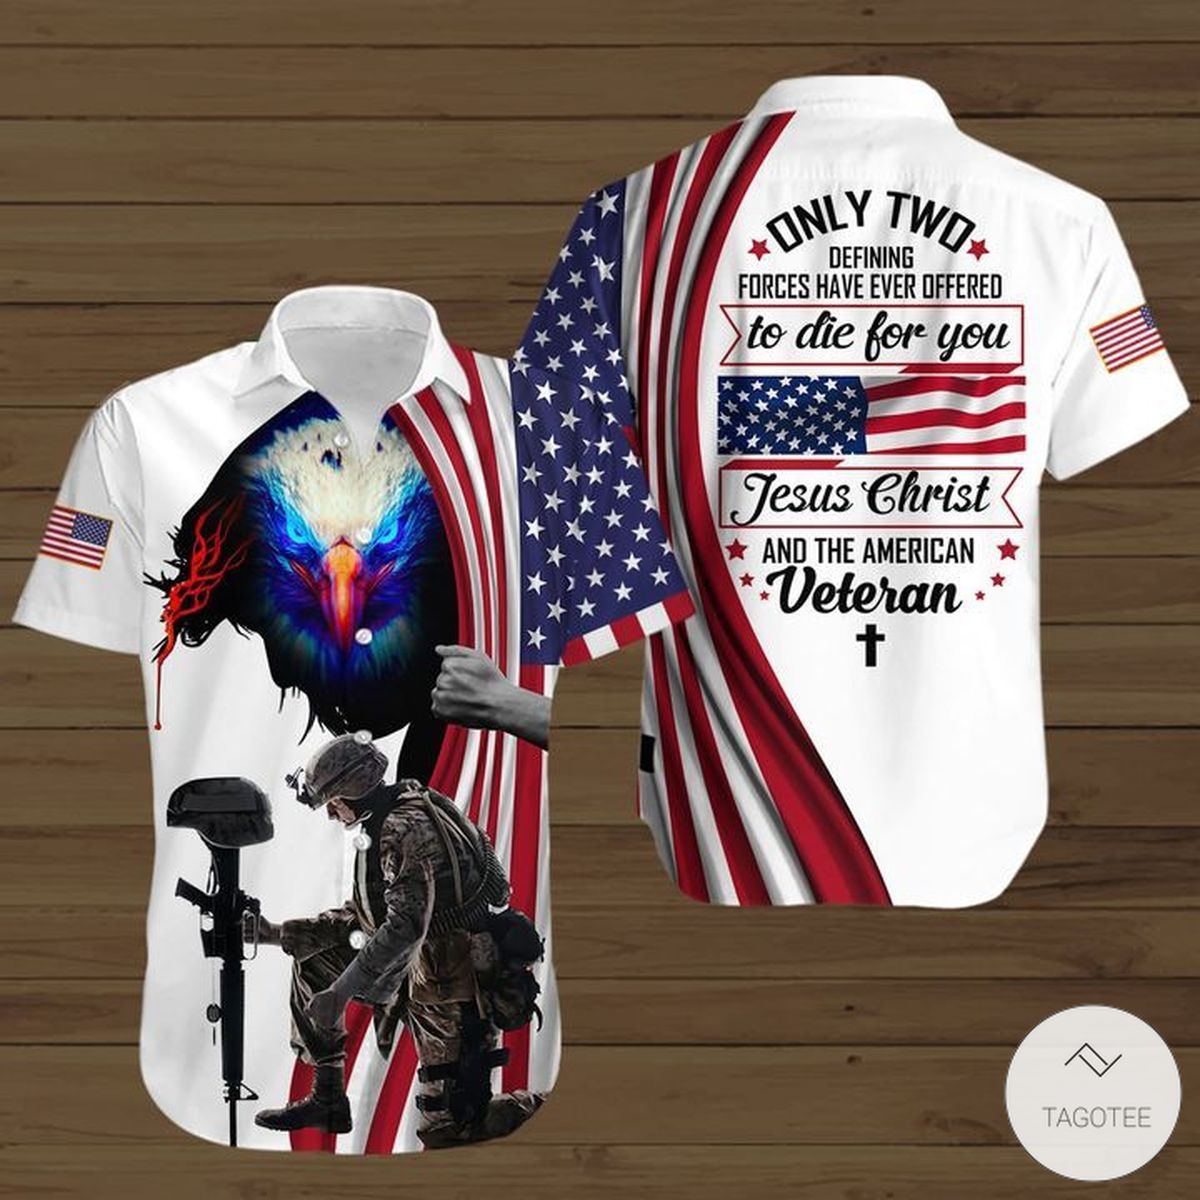 Jesus Christ And The American Veteran Only Two Defining Forces Have Ever Offered To Die For You Button Shirt